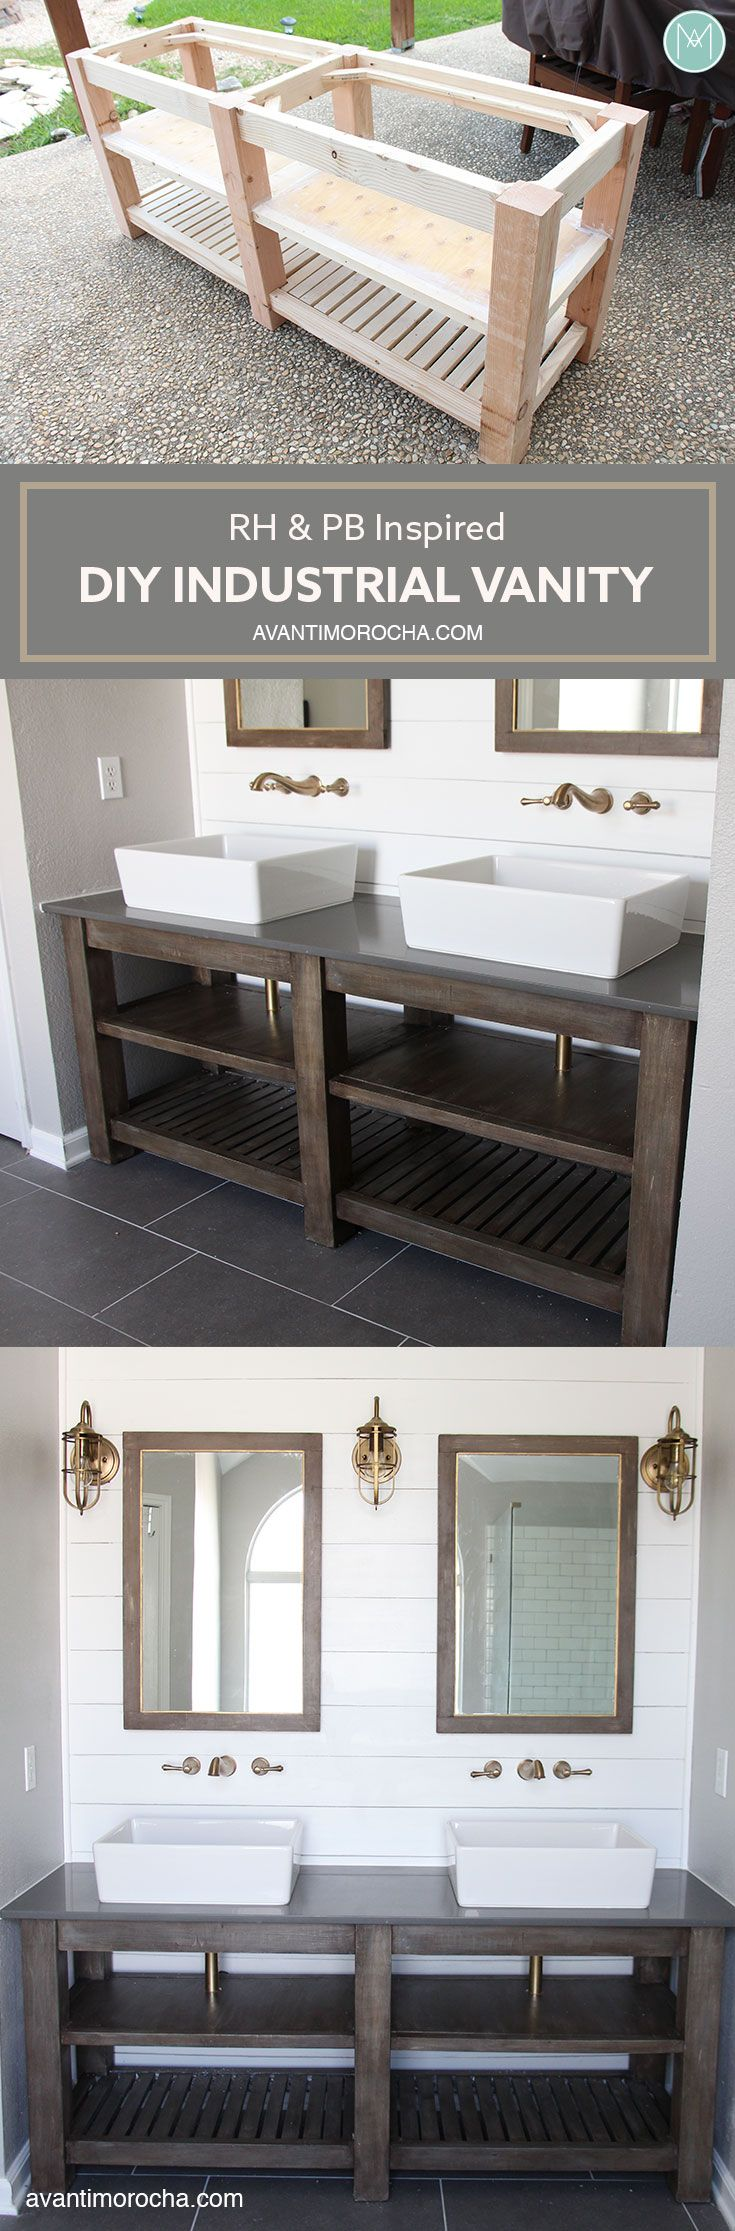 DIY Industrial Bathroom Vanity  Restoration Hardware | Pottery Barn inspired.